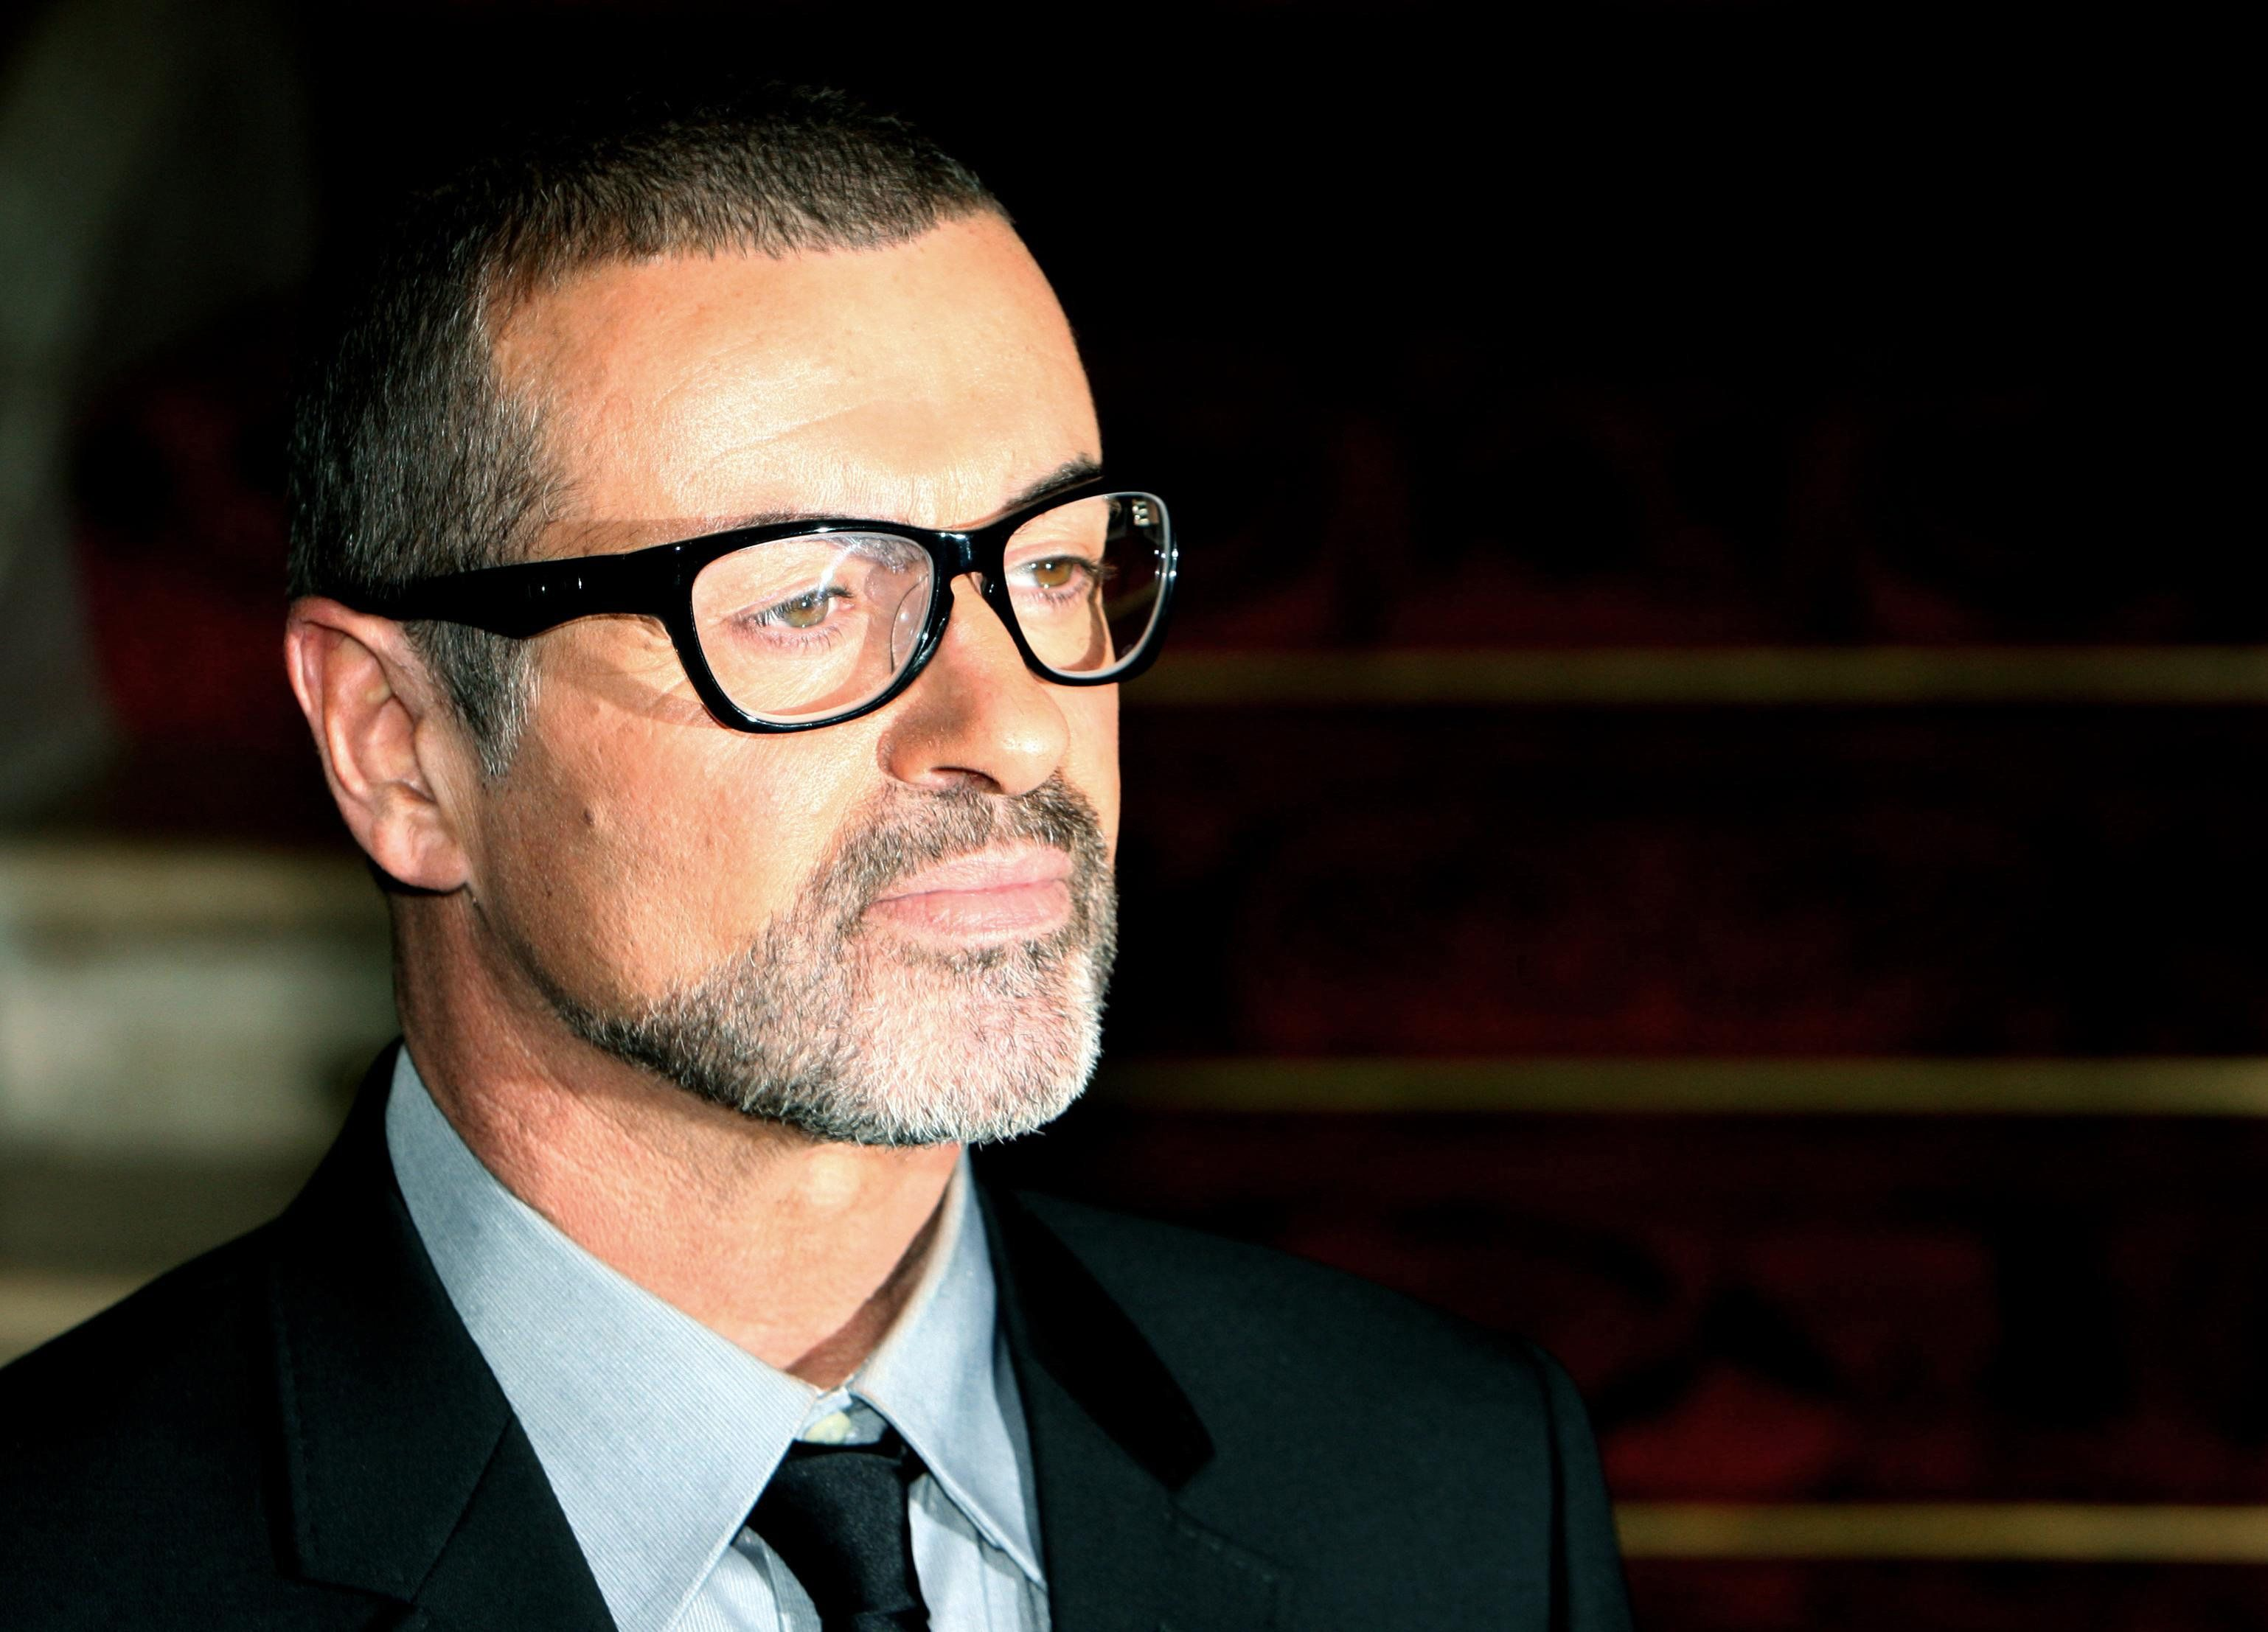 Sexual Freedom Party To Be Held In Park Where George Michael Cruised For